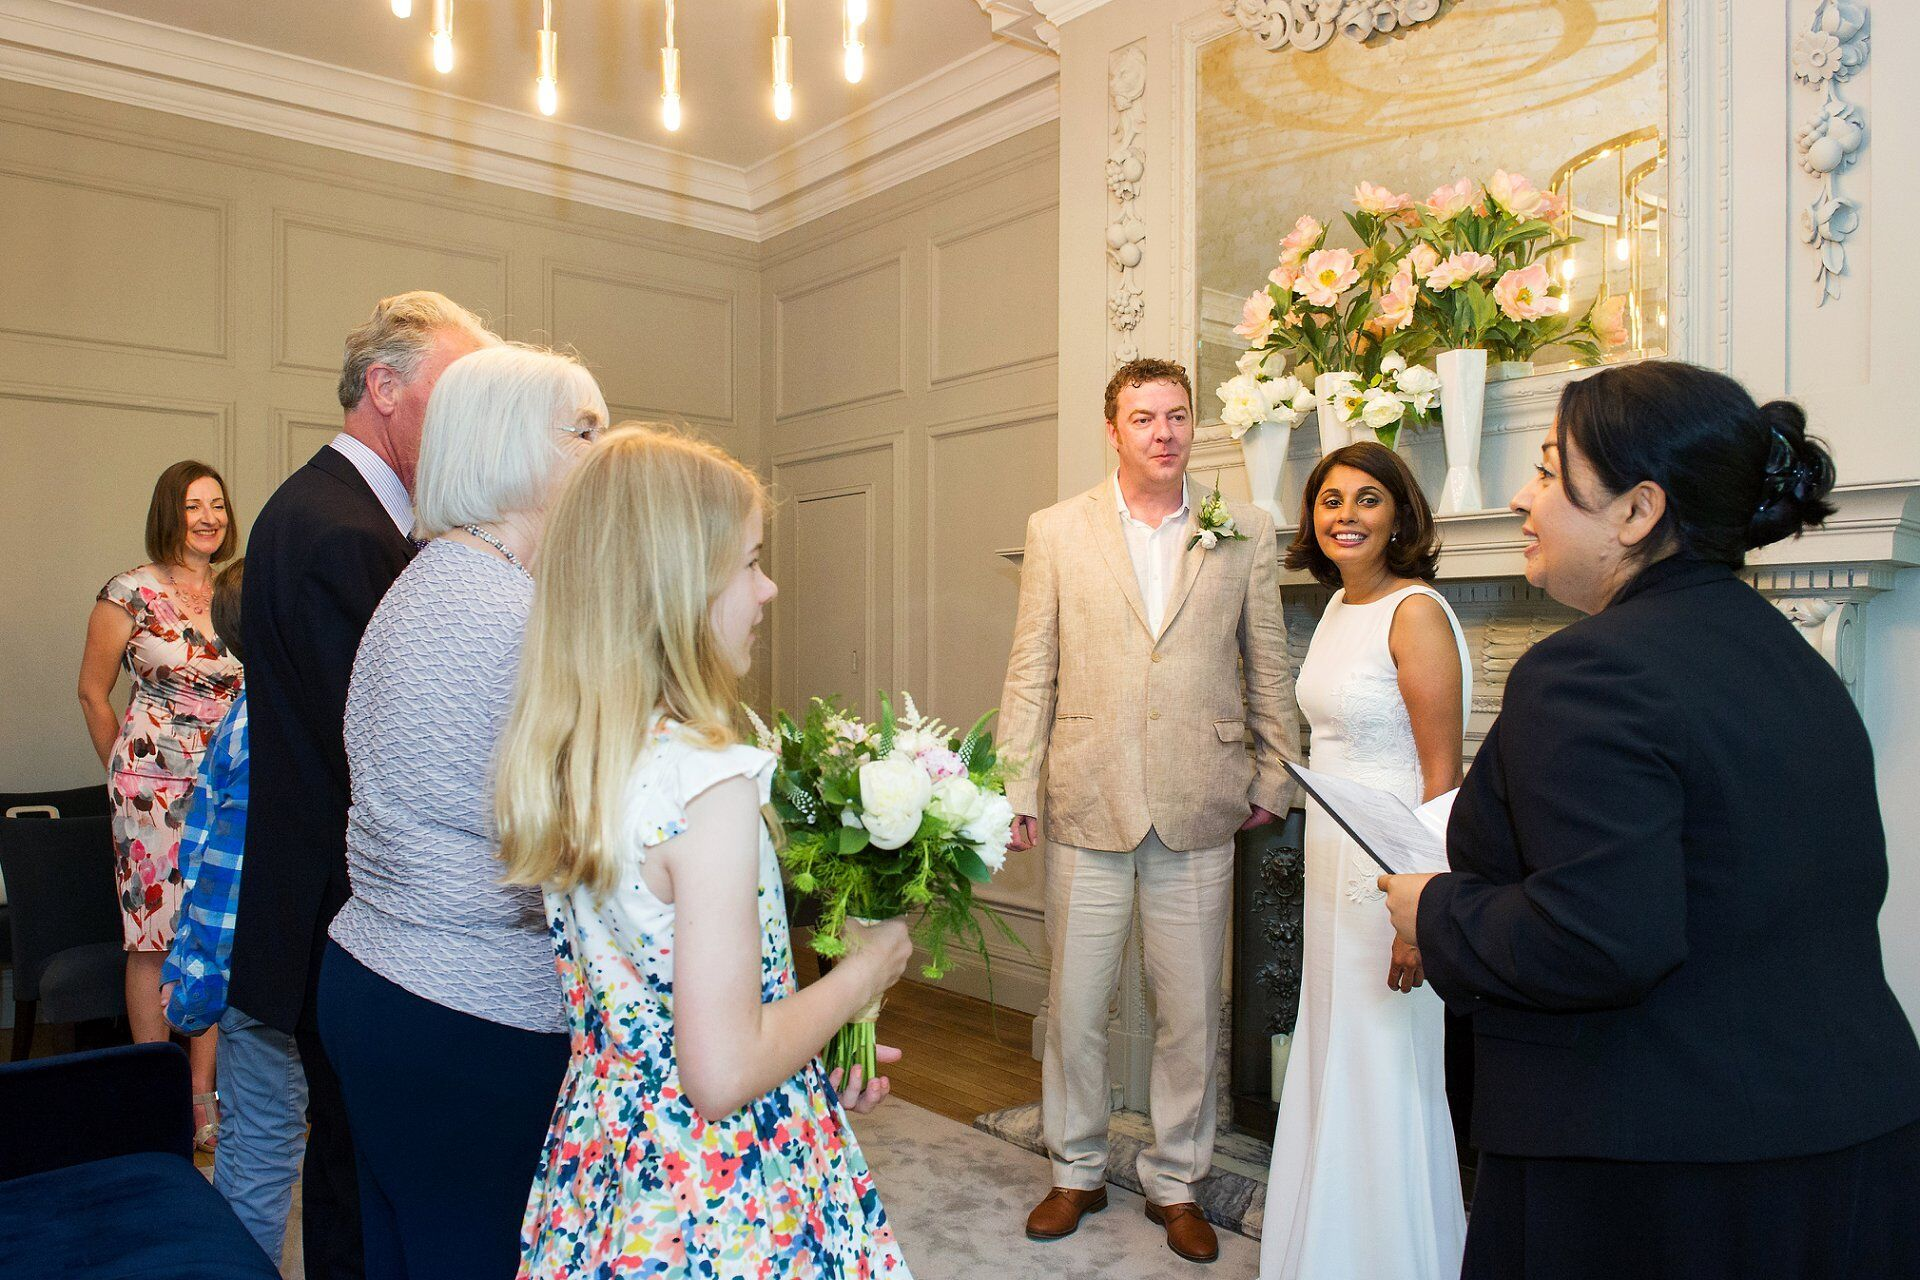 westminster registrar welcomes bride and groom and their guests to the soho room at old marylebone town hall